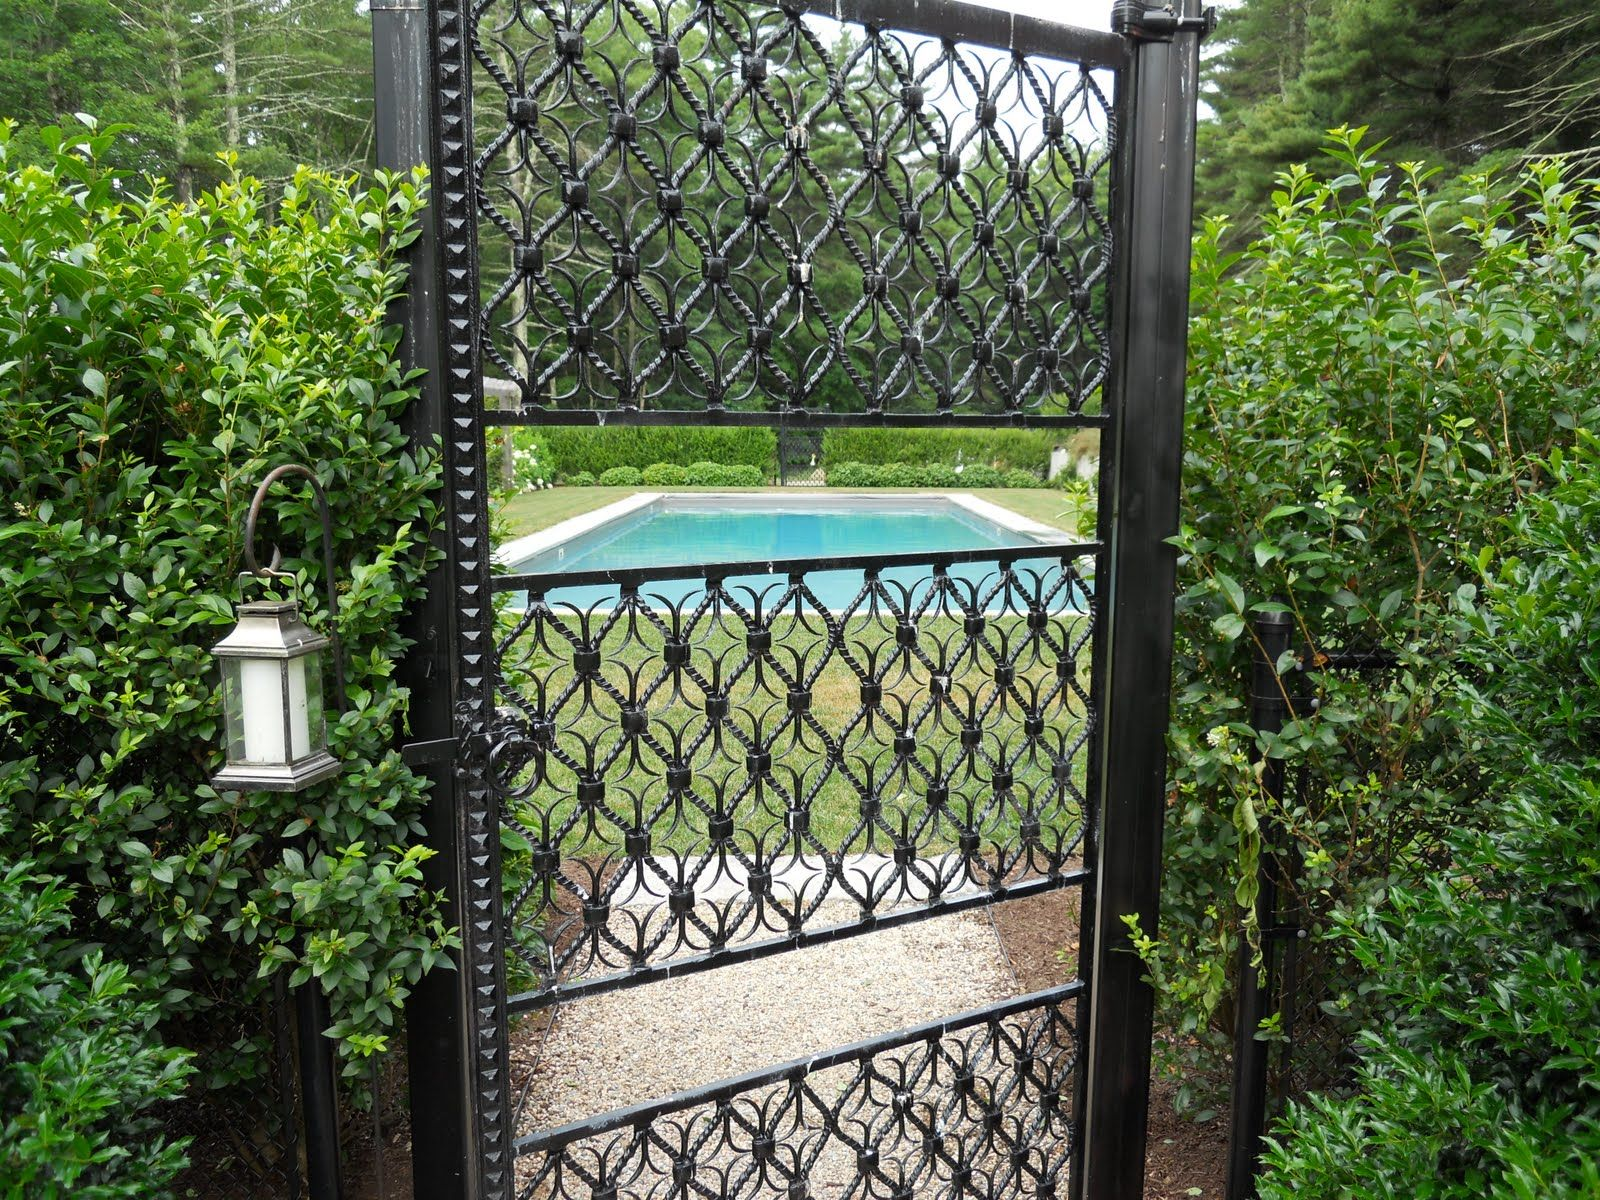 8 foot removable aluminum fence sections - Google Search | Fences ...